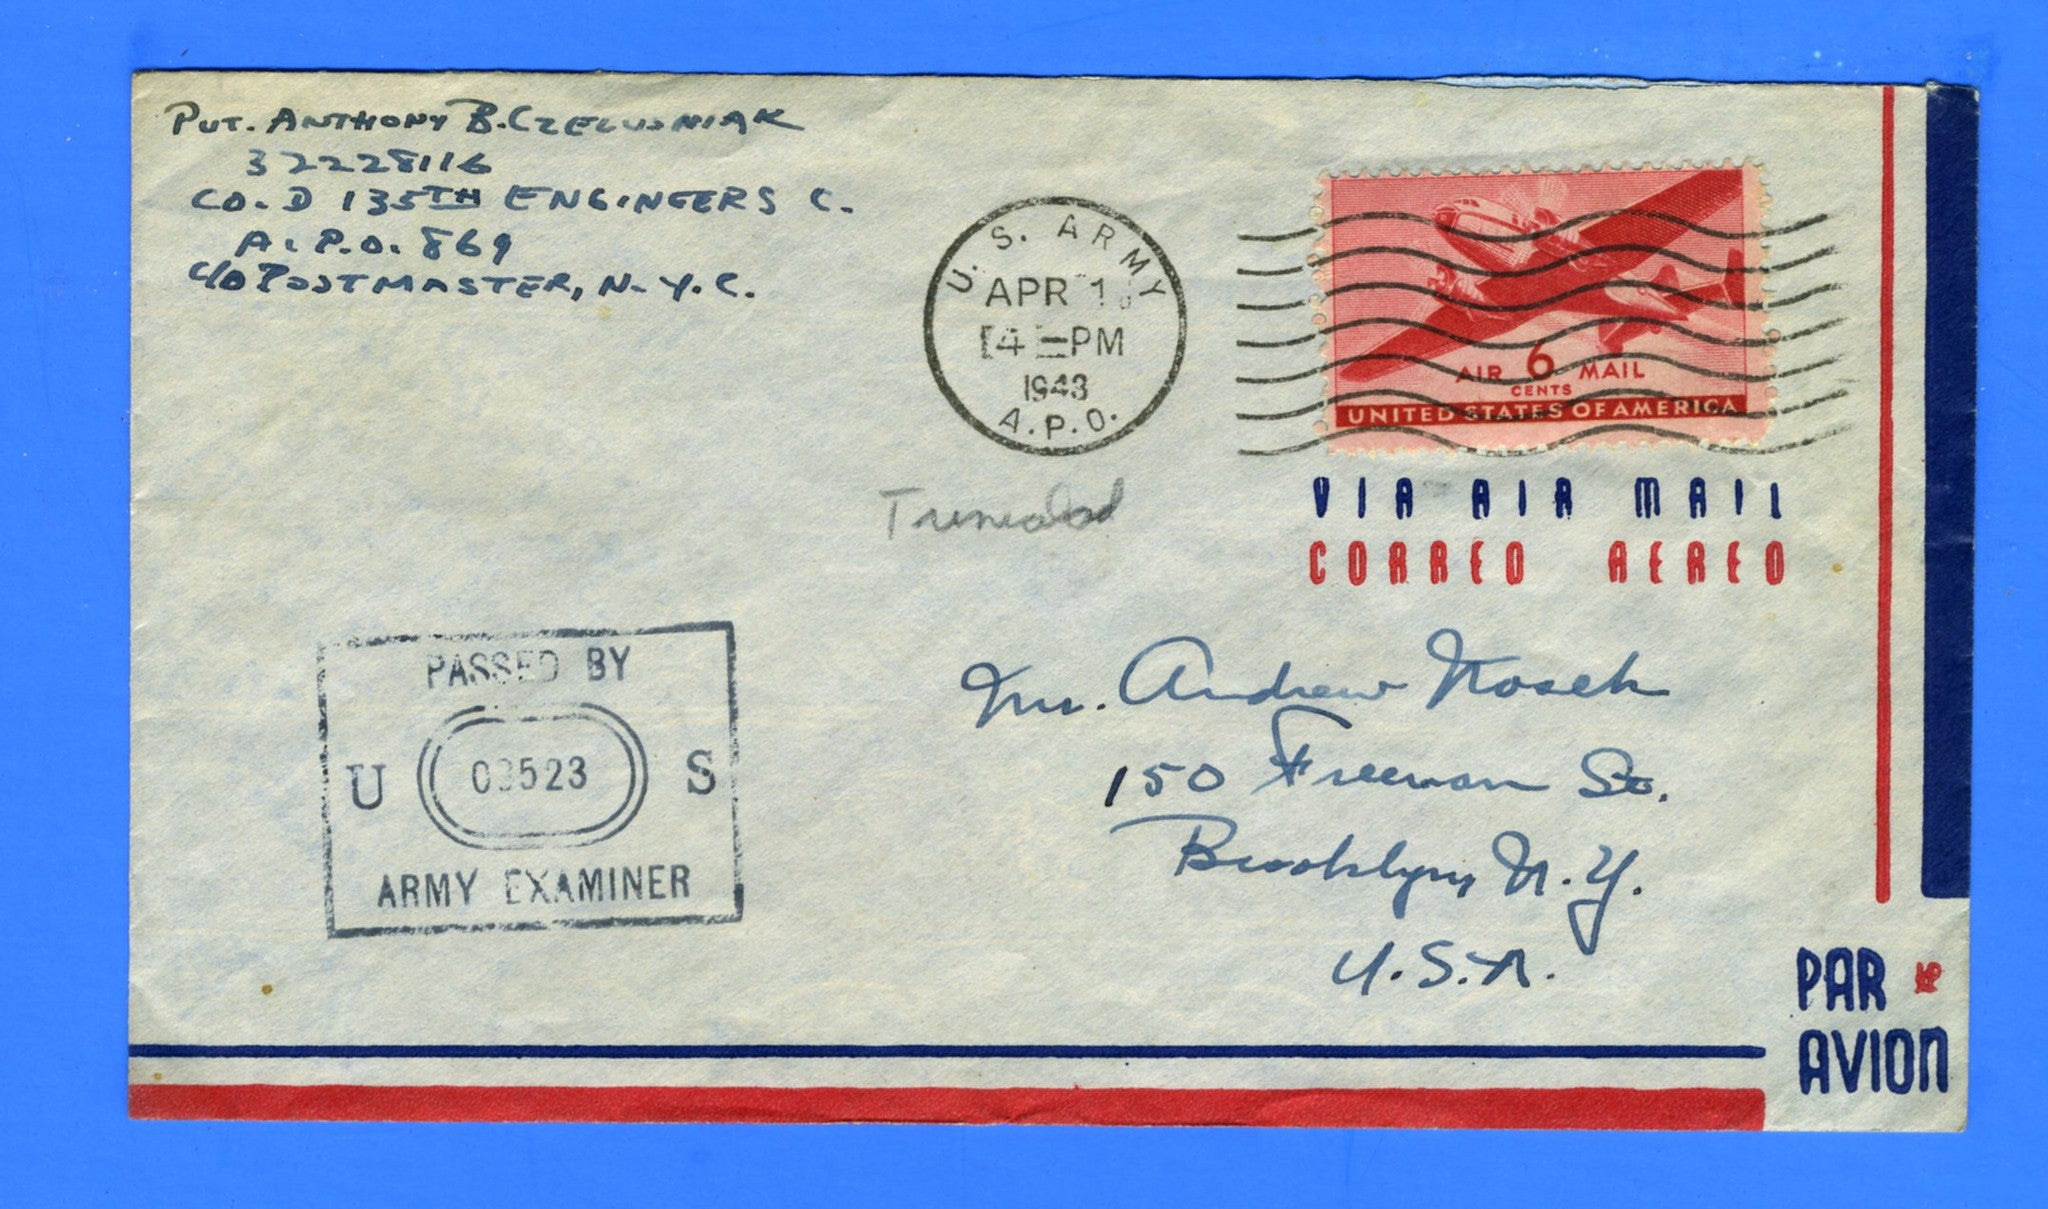 Soldier's Censored Mail APO 869 Fort Read, Trinidad April 1, 1943